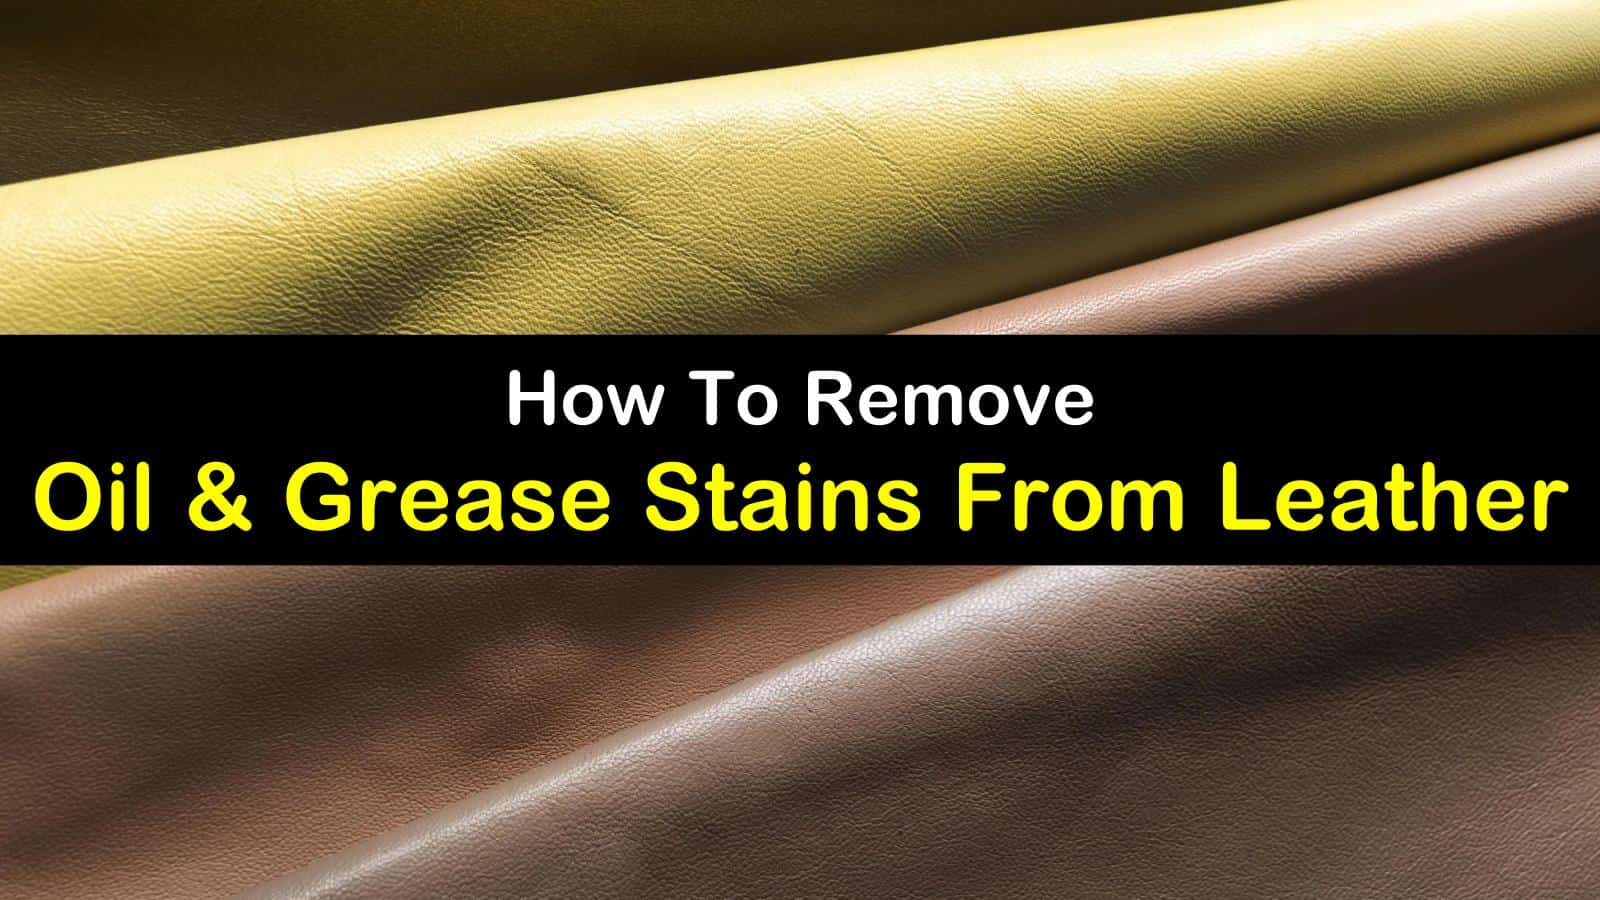 Oil and Grease Stains